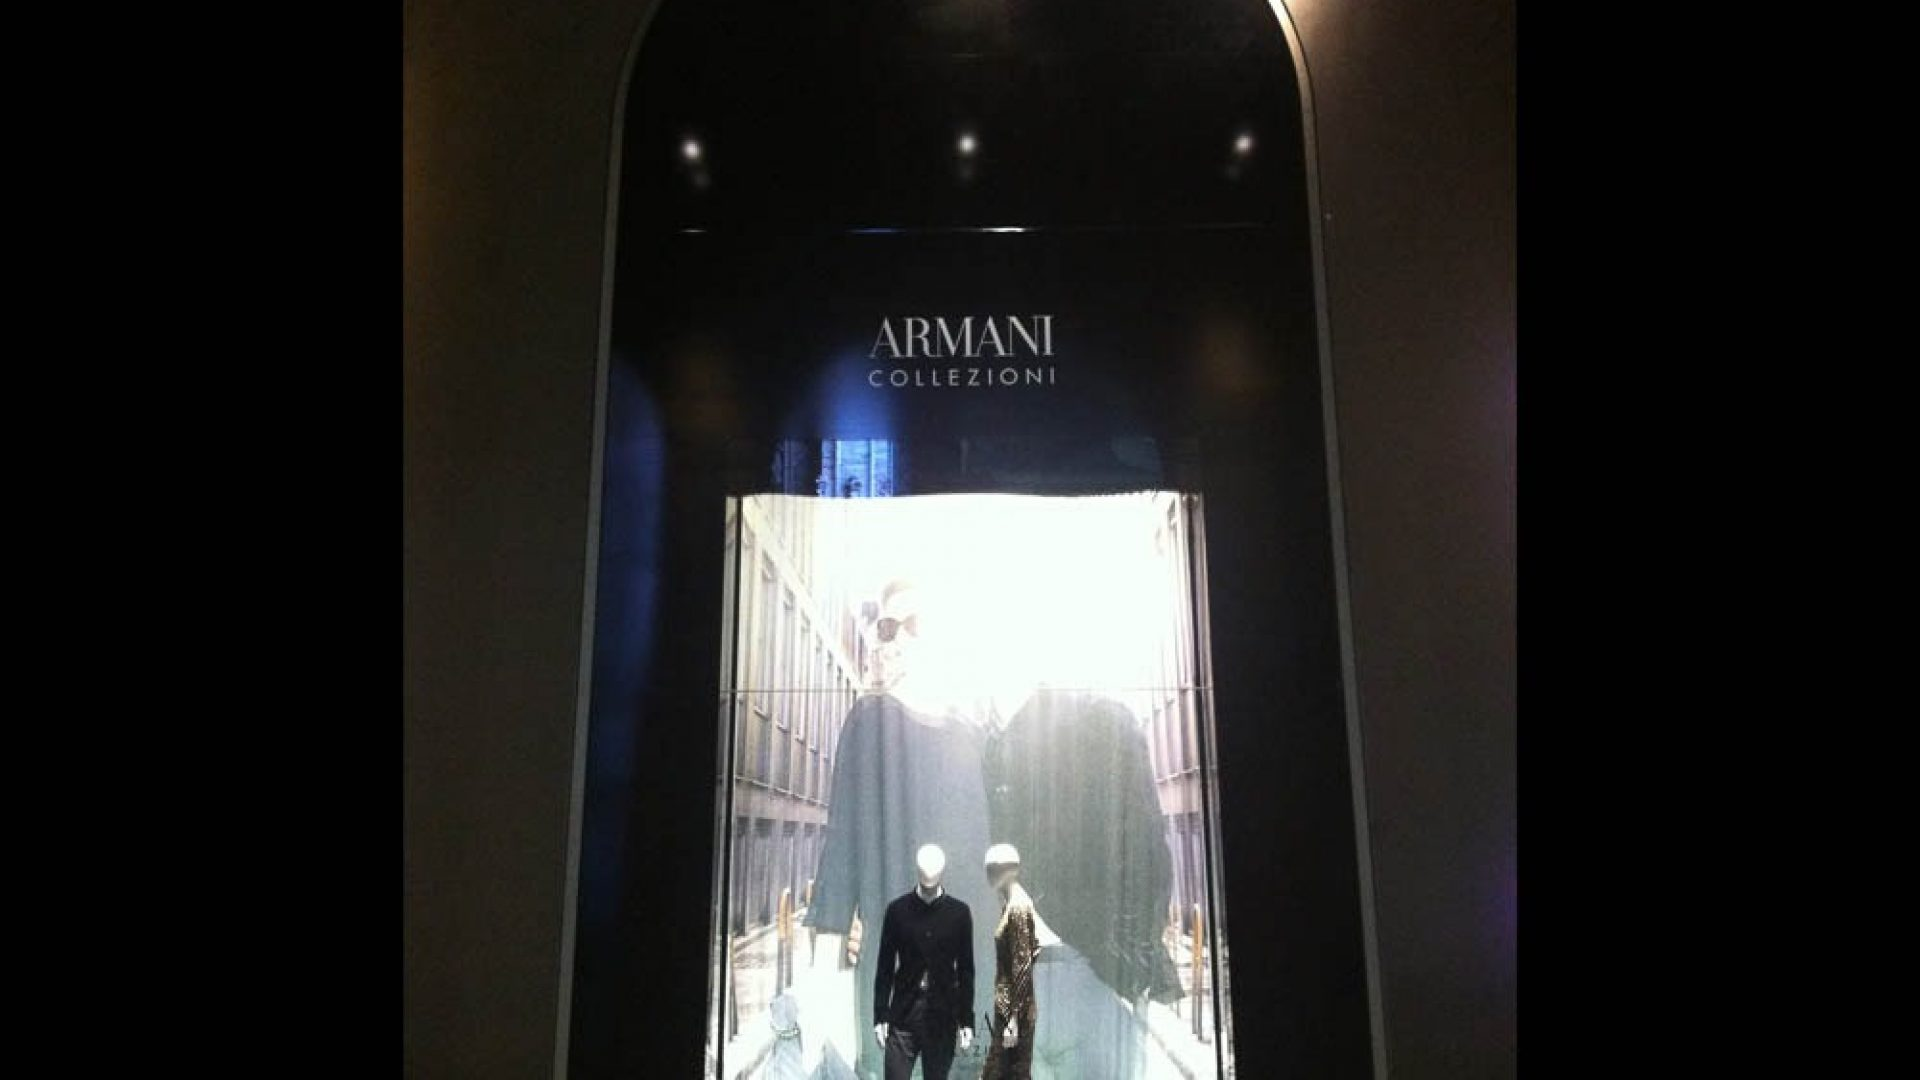 Armani - Realization of all 8 windows of La Rinascente Milan